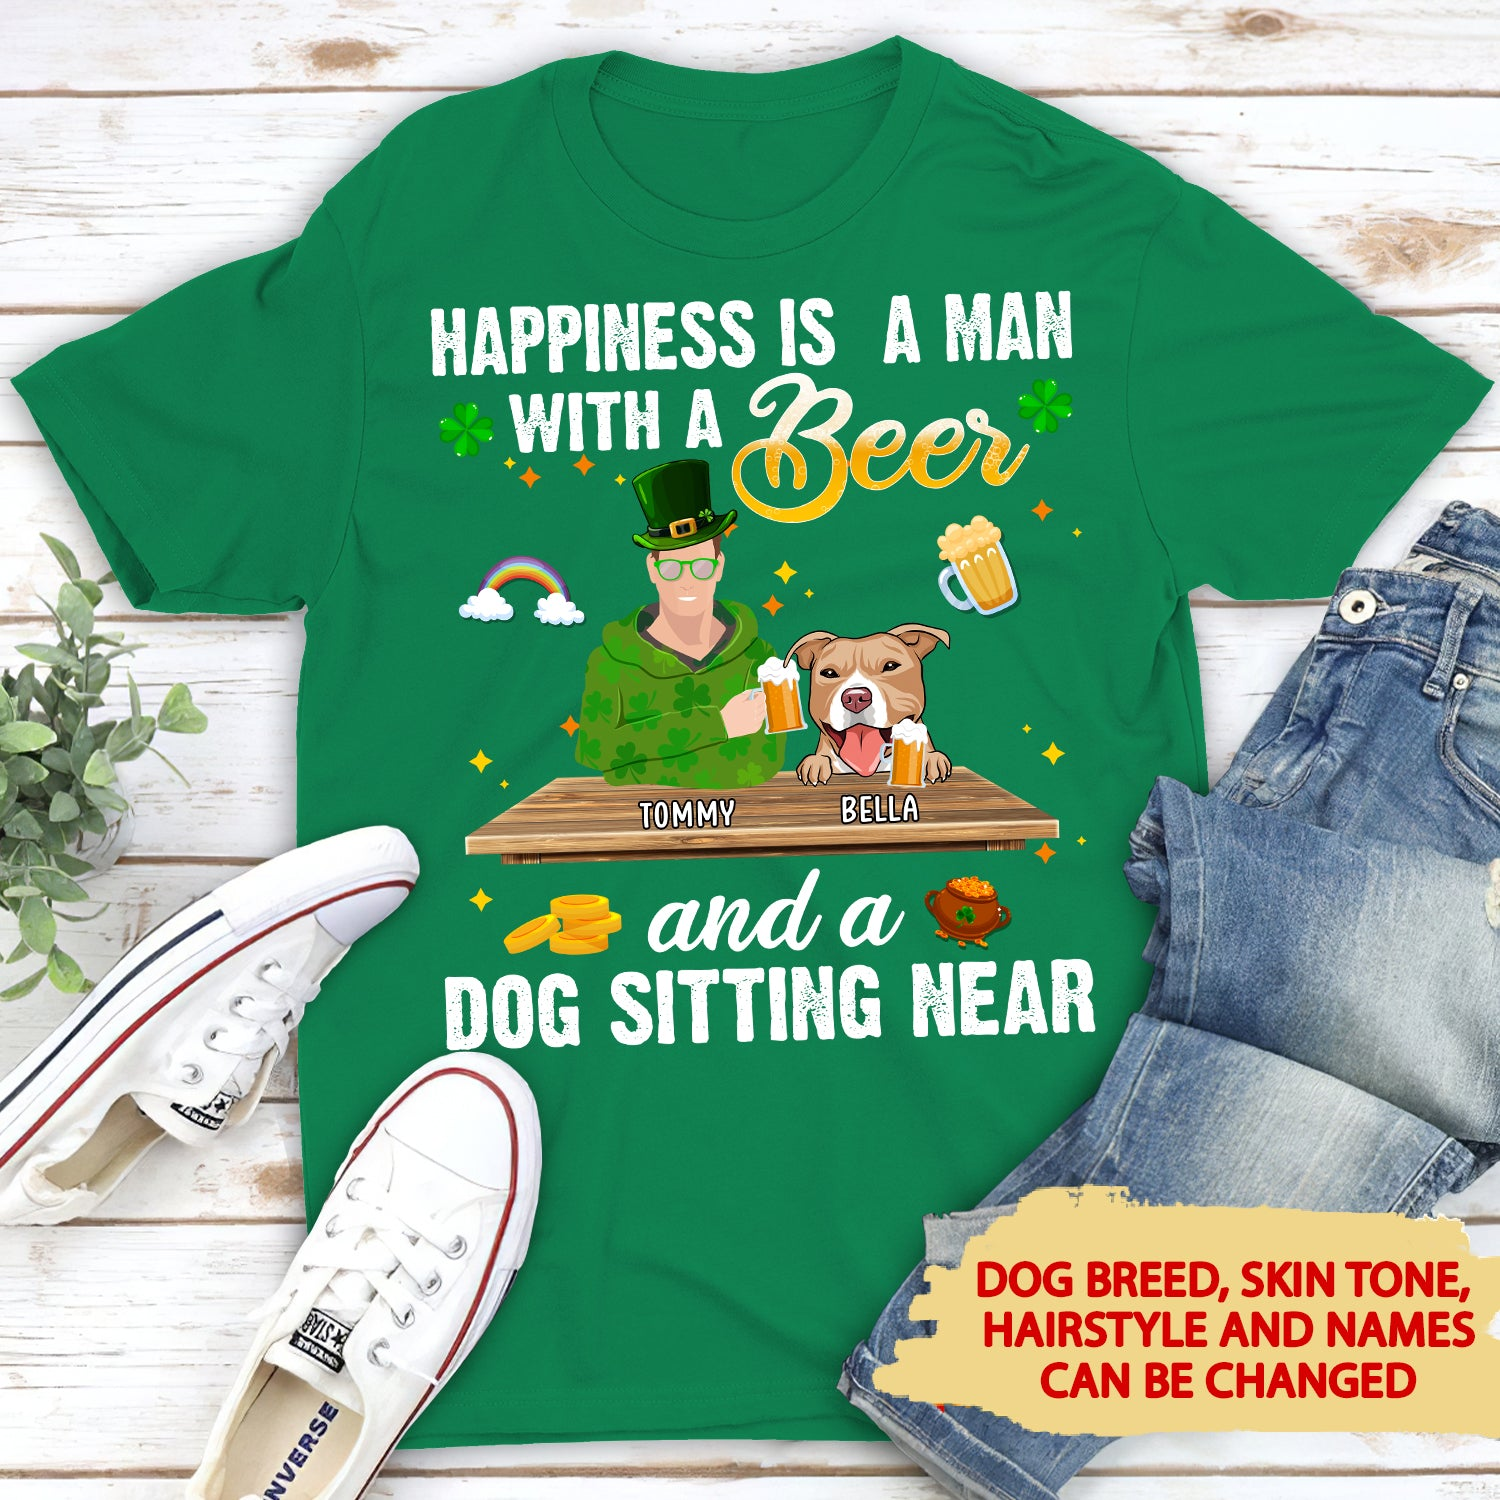 Dog Sitting Near - Personalized Custom Unisex T-shirt